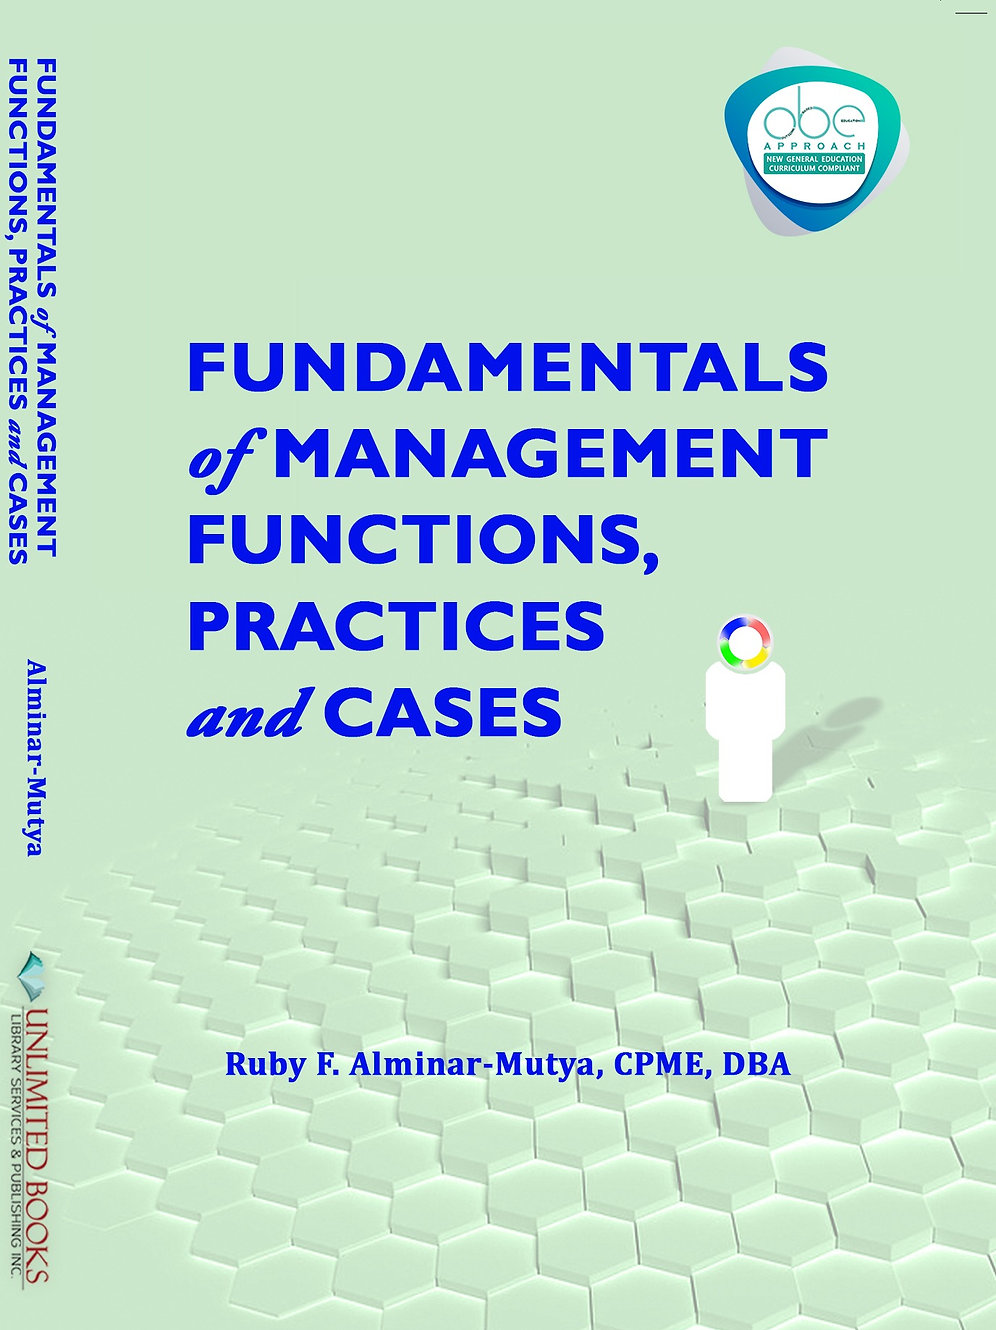 Fundamentals of Management - Functions, Practices, and Cases